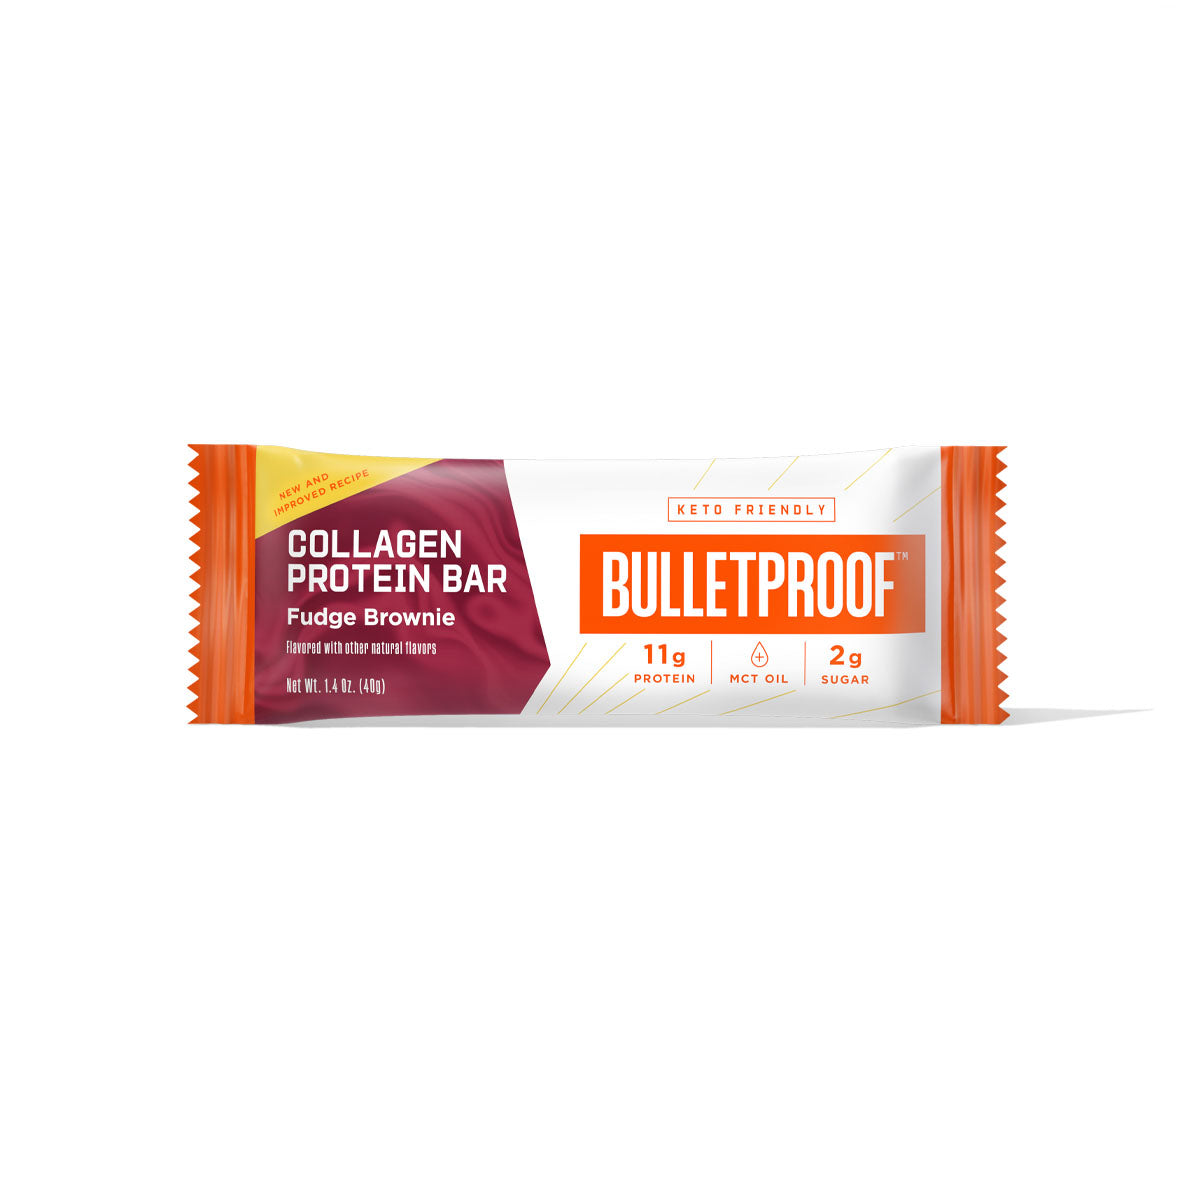 Bulletproof Fudge Brownie Collagen Protein Bar